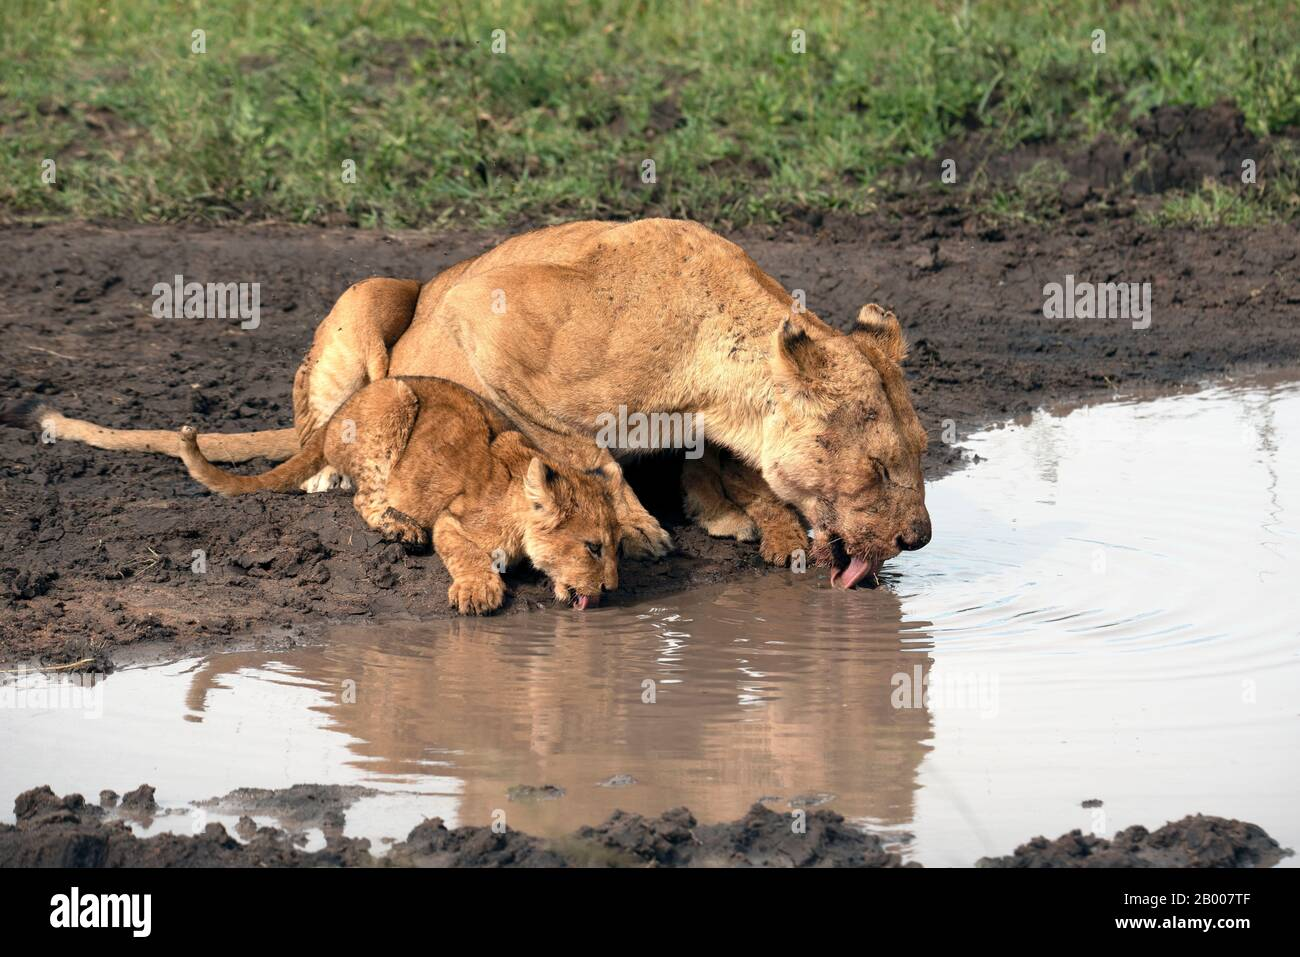 Lioness and her cub having a drink at the waterhole. Stock Photo